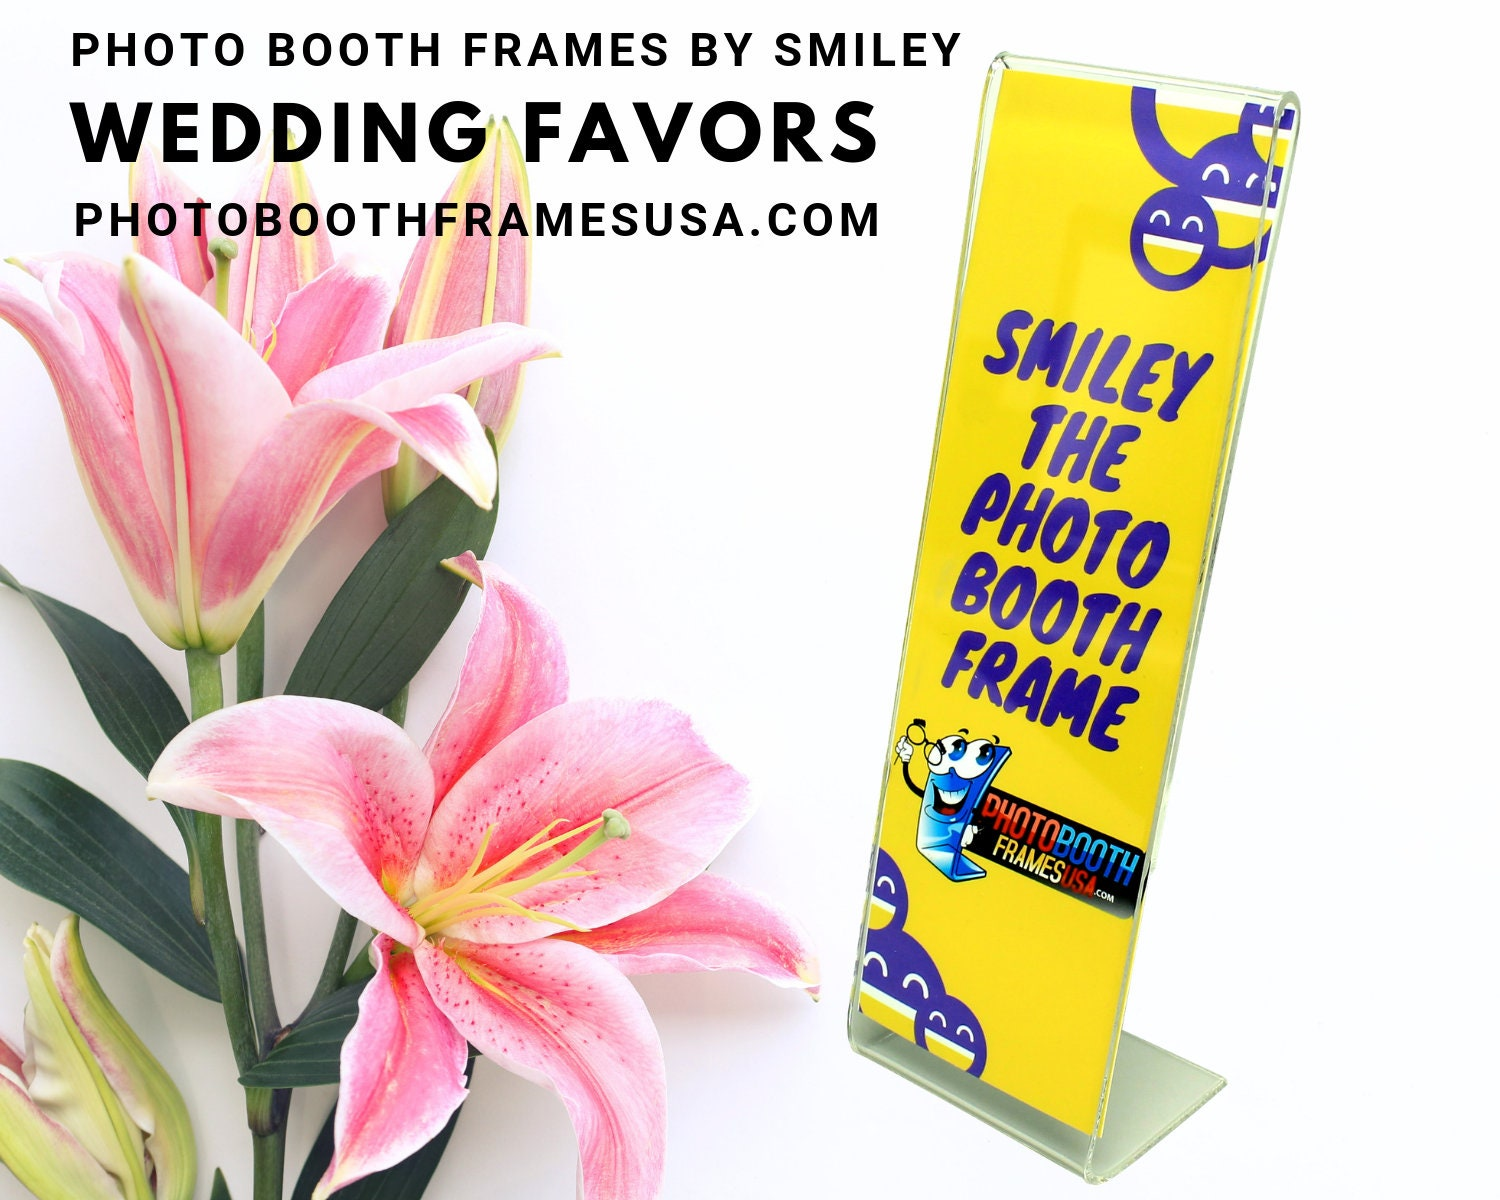 2x6 Photo Booth Frame - Low Cost Photo Booth Frames - Wedding Favors -  Party Favors - Photo Booth Rental Favors - Acrylic Picture Frames